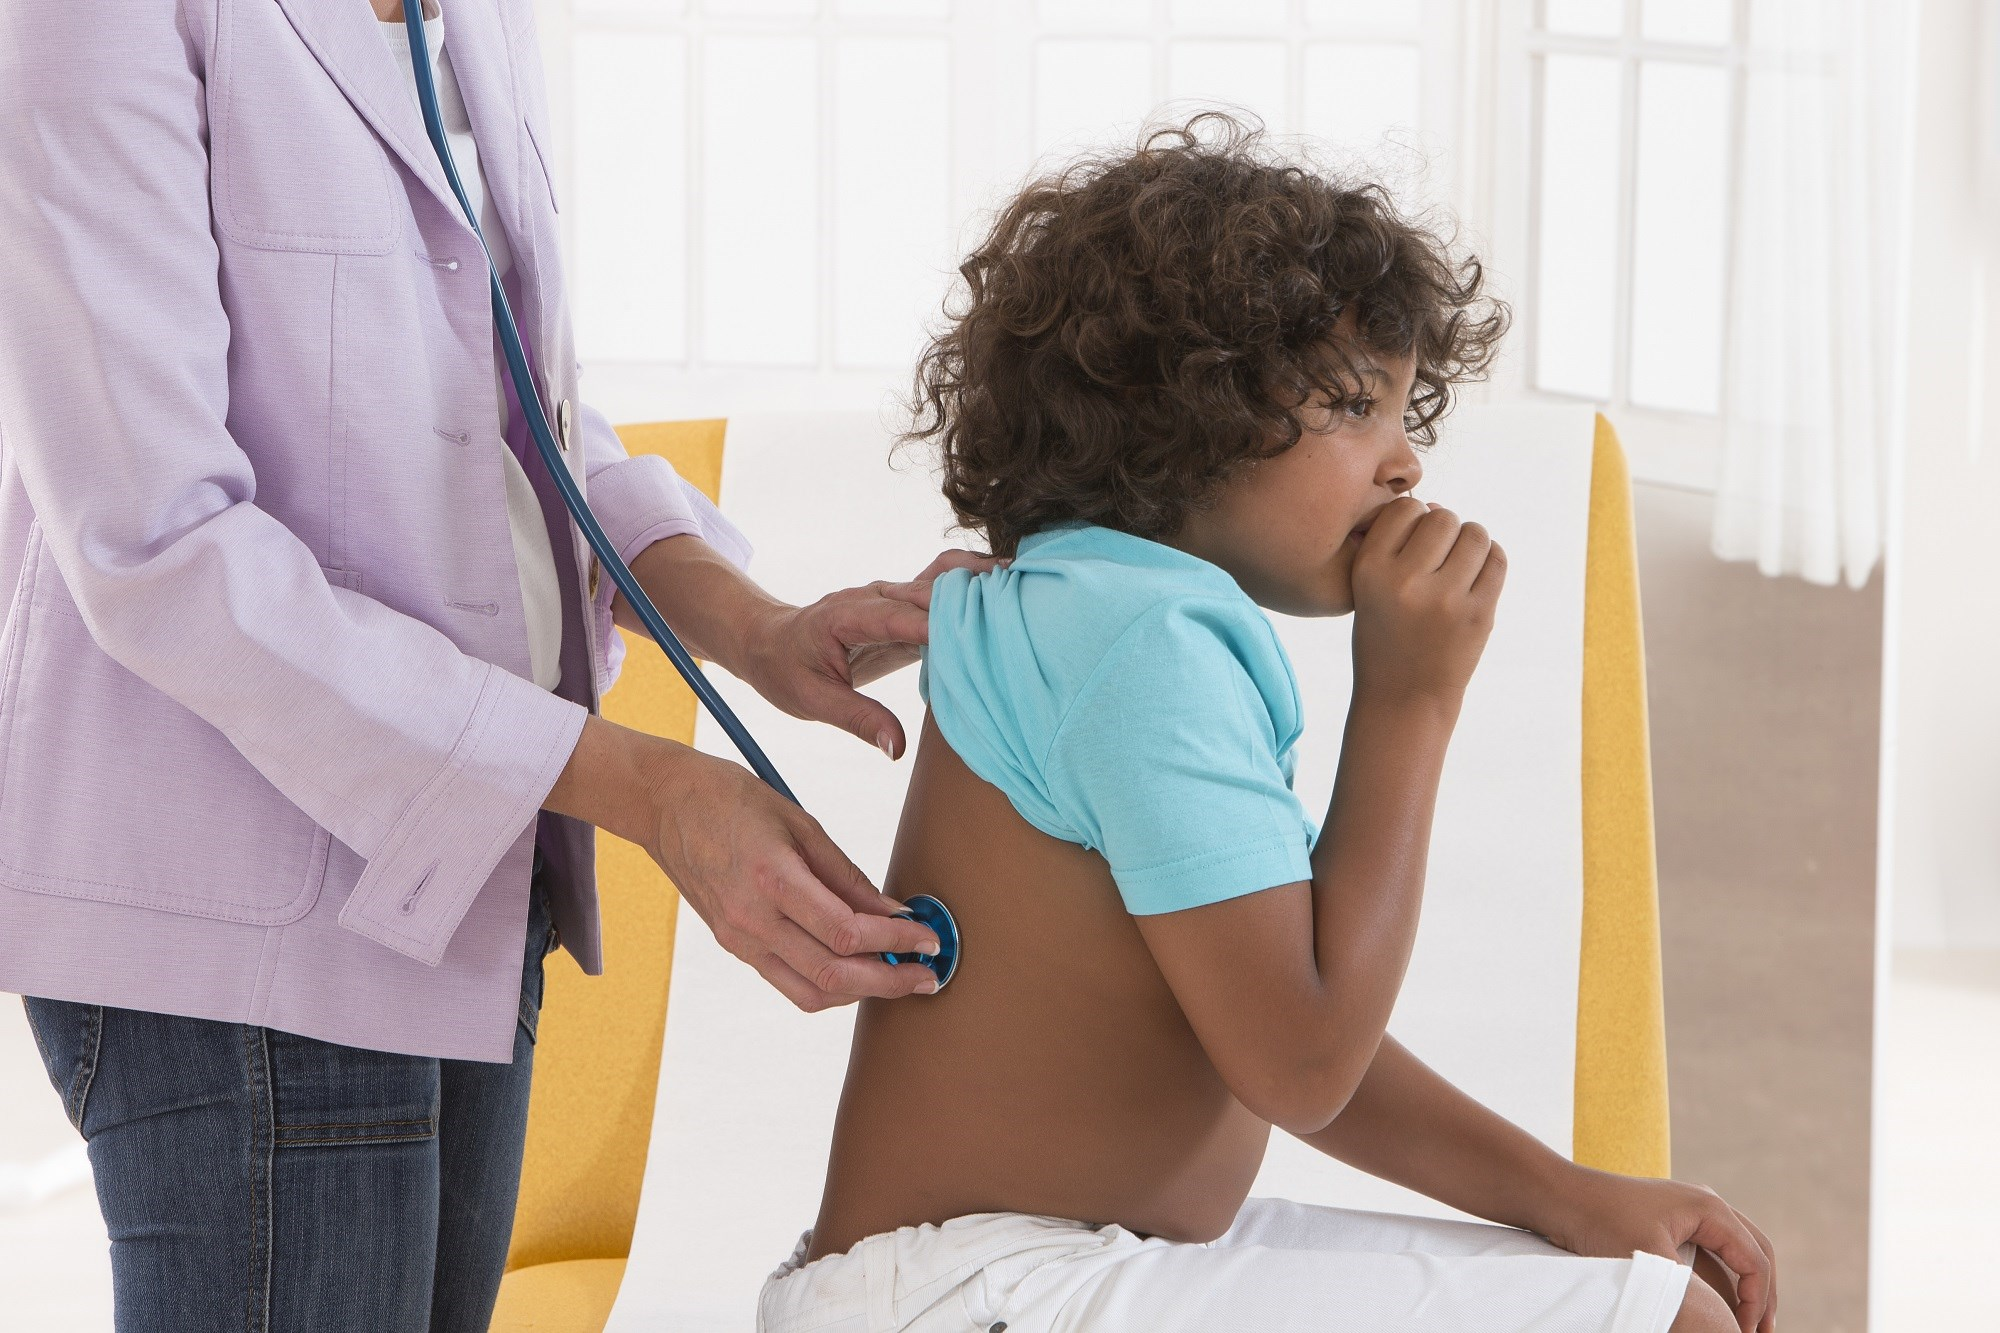 Similar Safety and Efficacy for Rifampin vs Isoniazid in Children, Adolescents